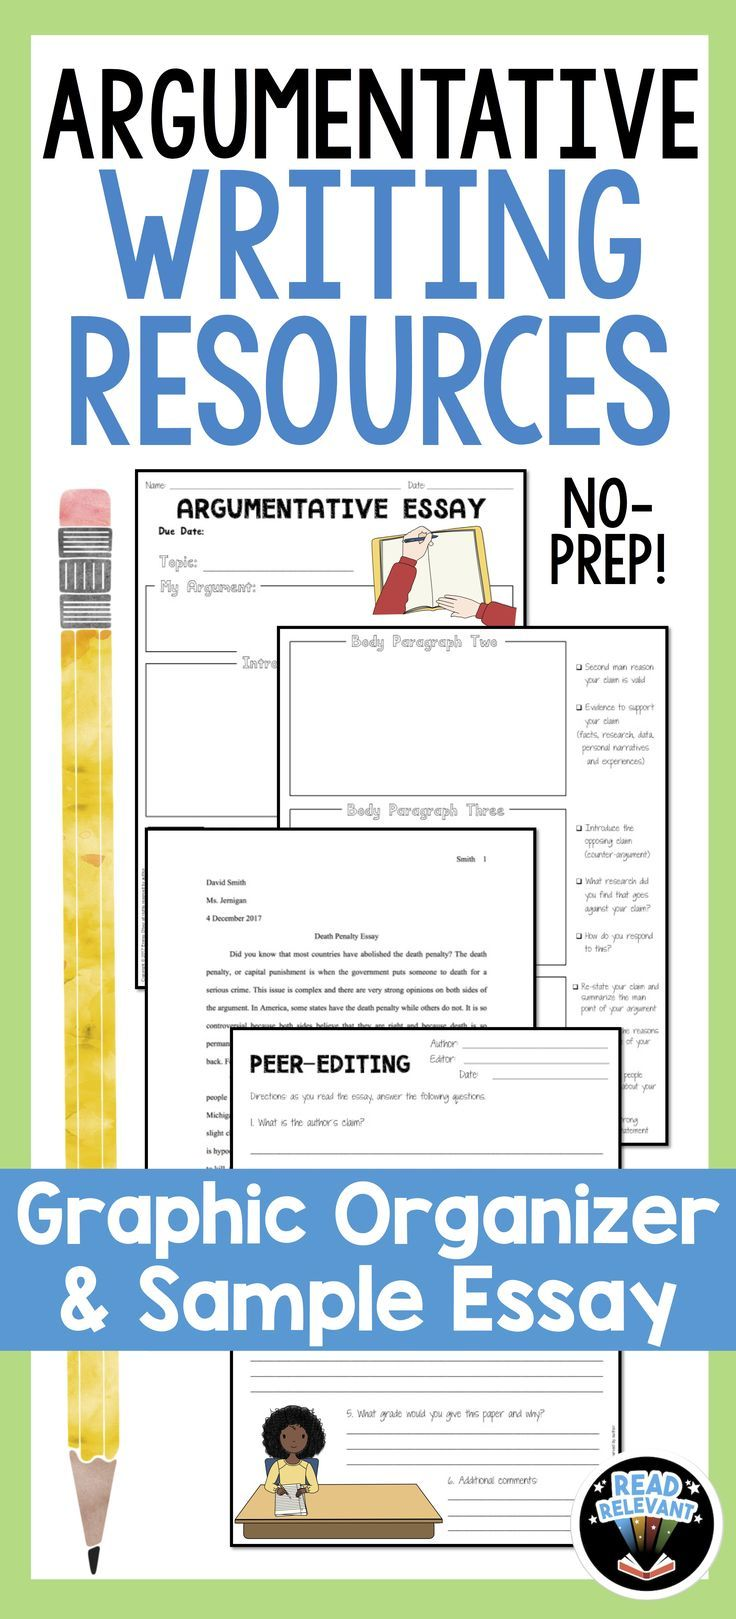 Argumentative Essay Writing Resources  Graphic Organizer And